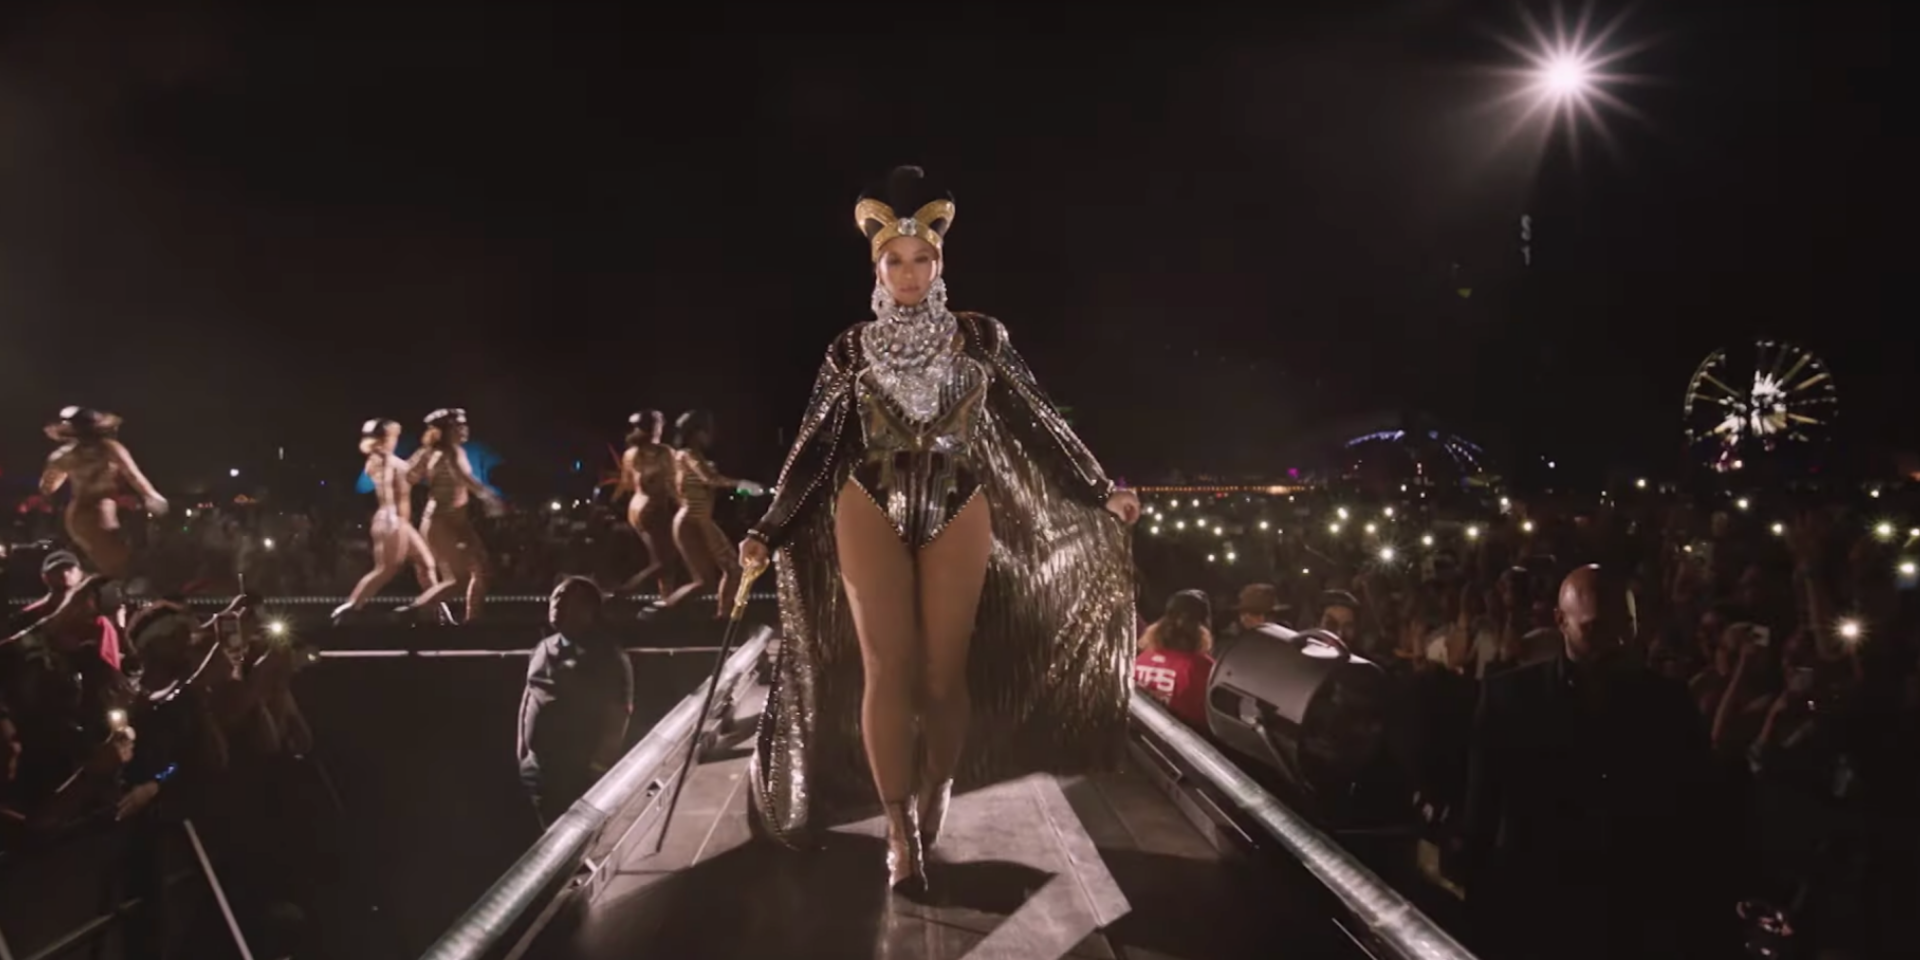 Get a first look at Beyoncé's Netflix documentary, Homecoming – watch